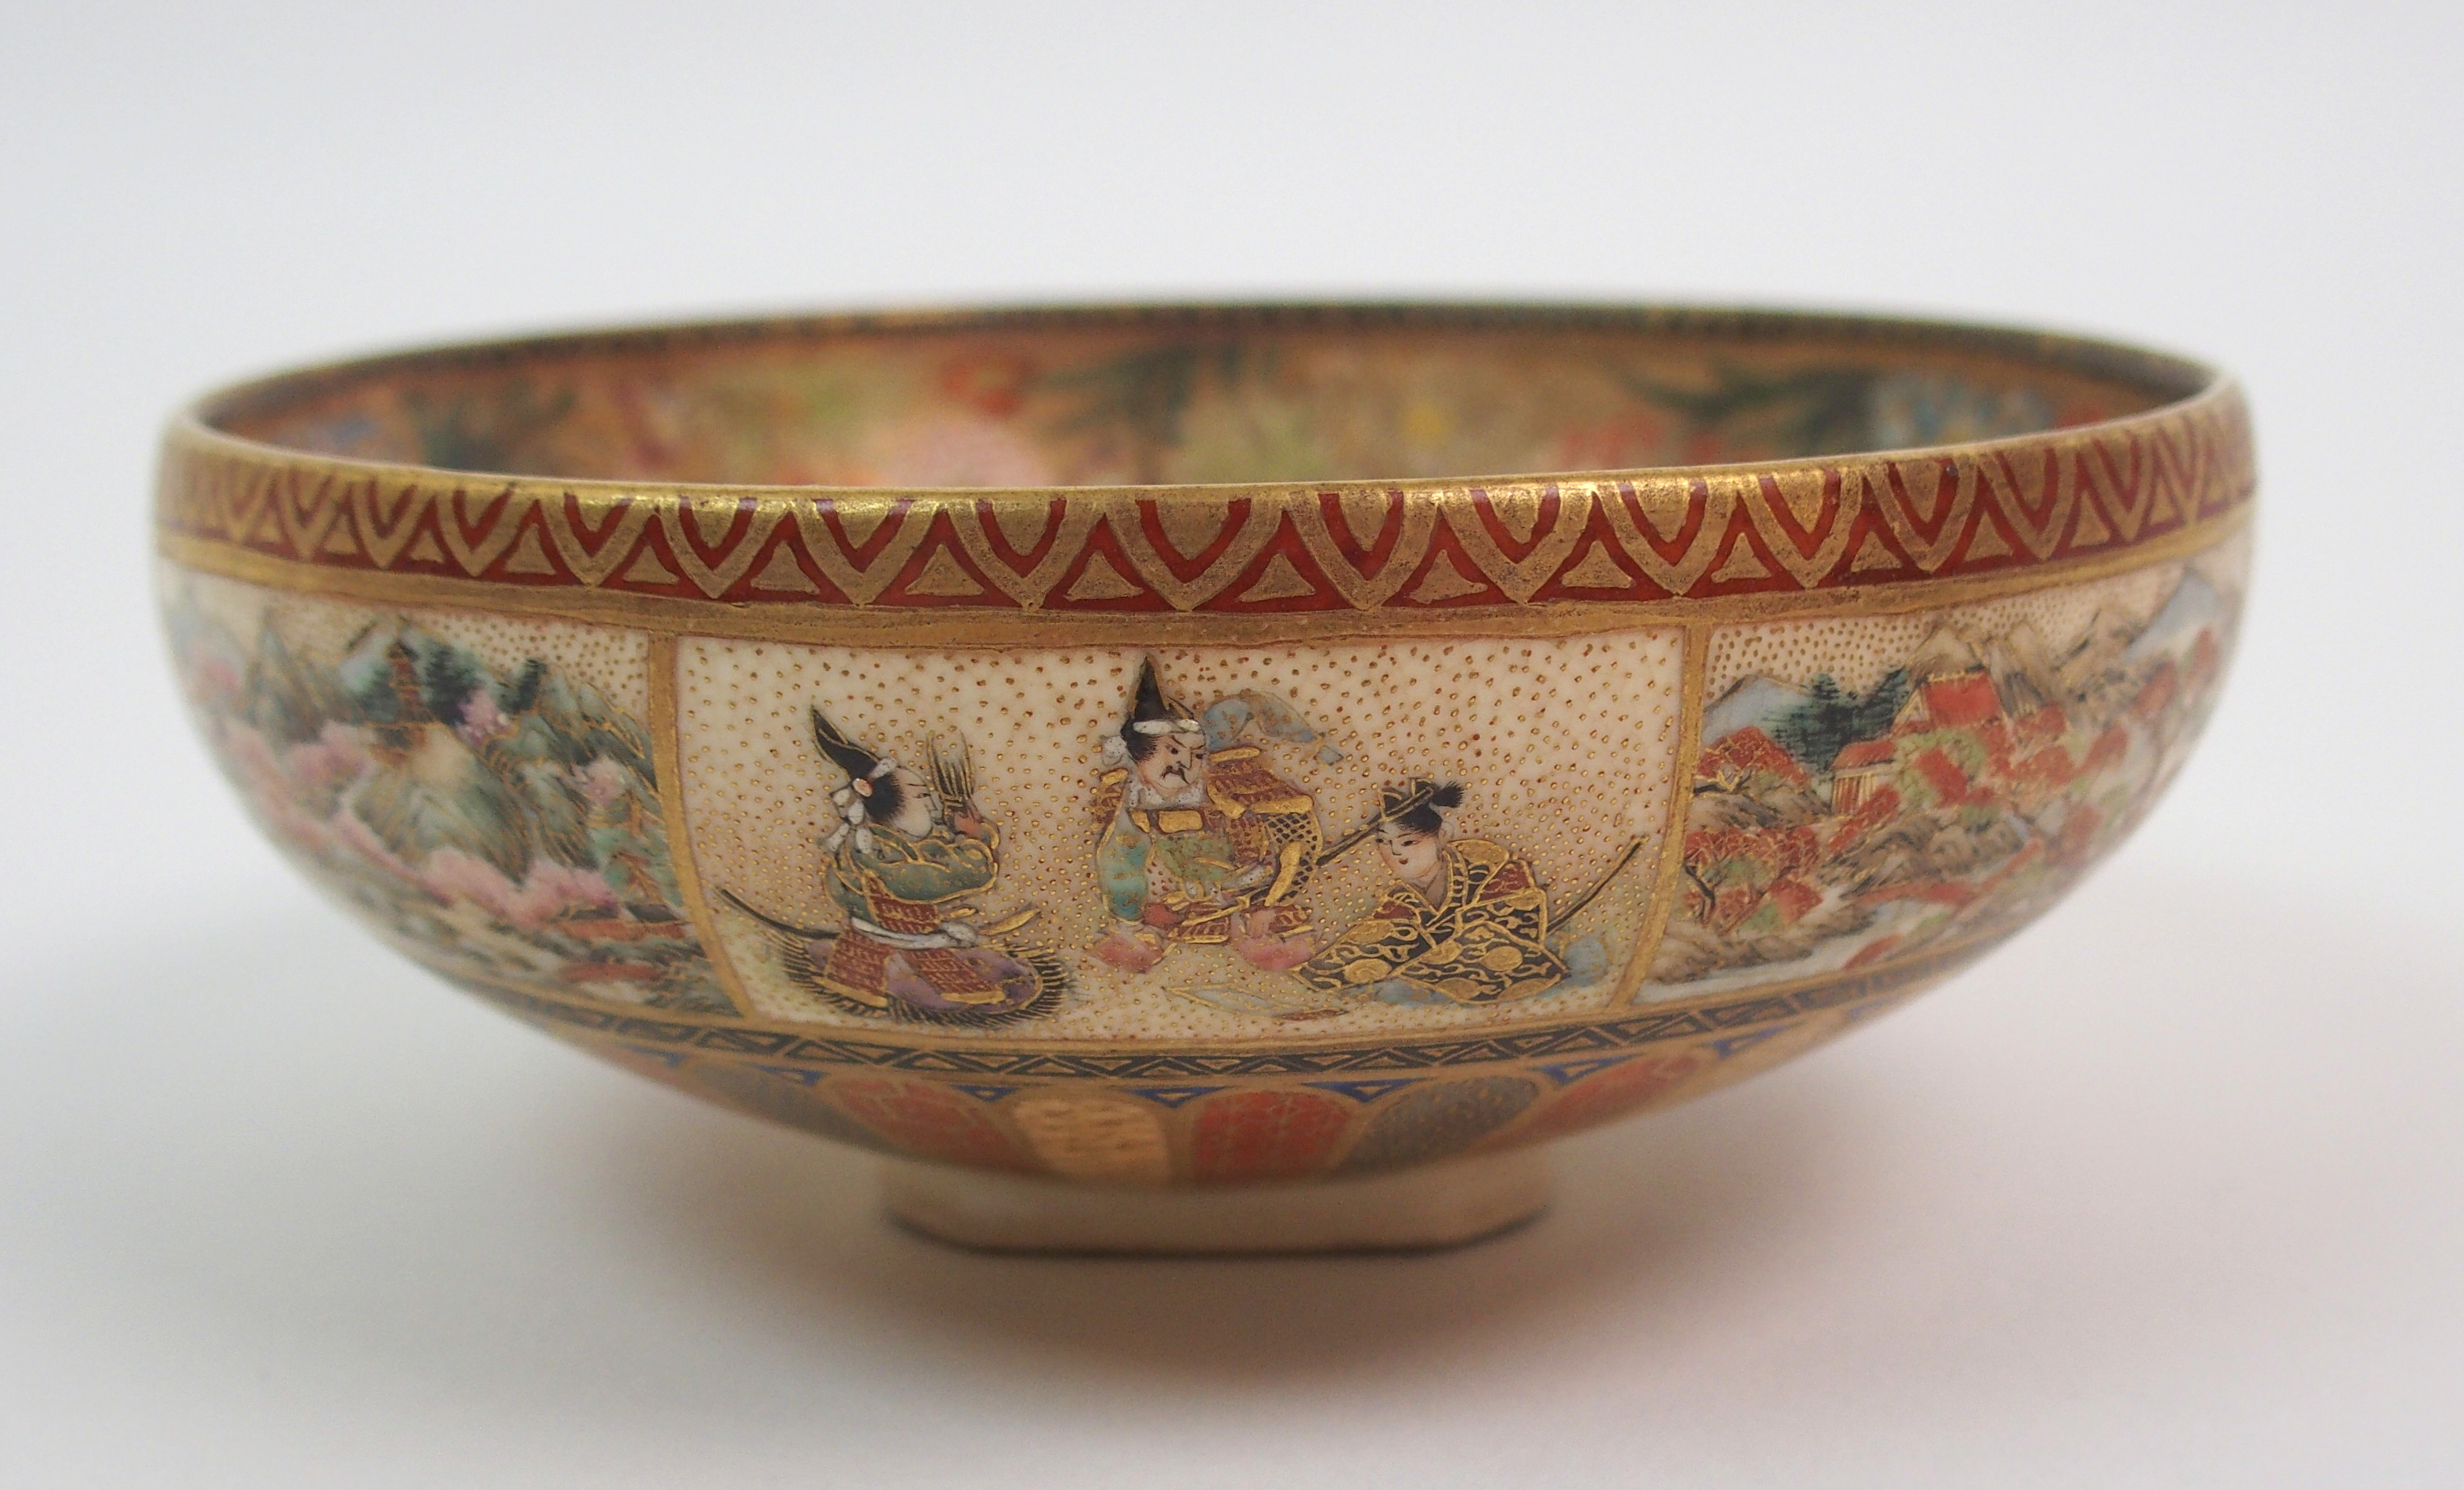 Lot 37 - A SATSUMA BOWL painted with panels of figures, landscapes and flowers above a stiff leaf band,